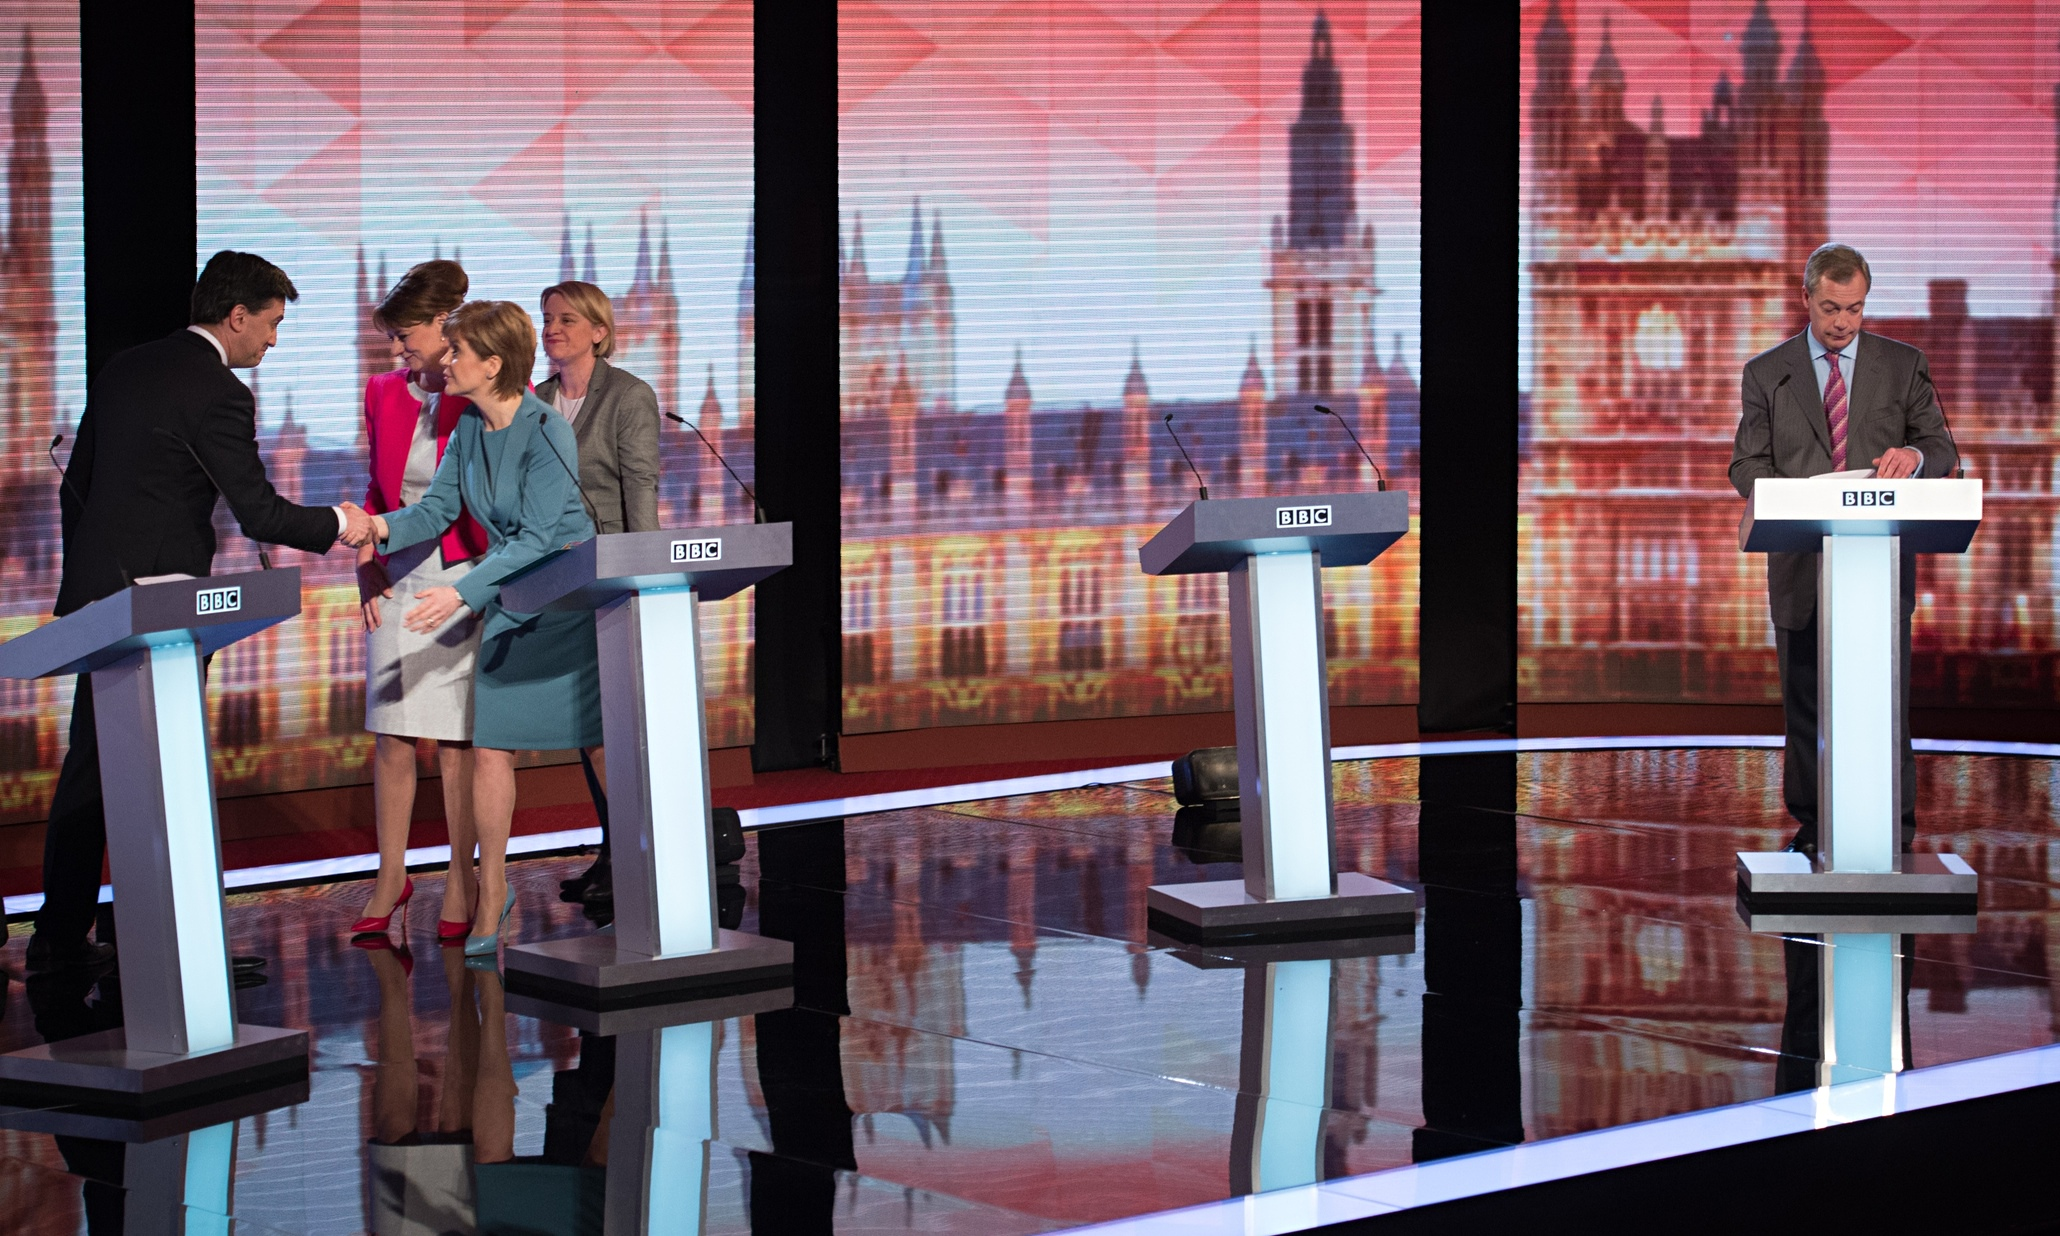 http://static.guim.co.uk/sys-images/Guardian/Pix/pictures/2015/4/17/1429272940999/BBC-election-debate-009.jpg